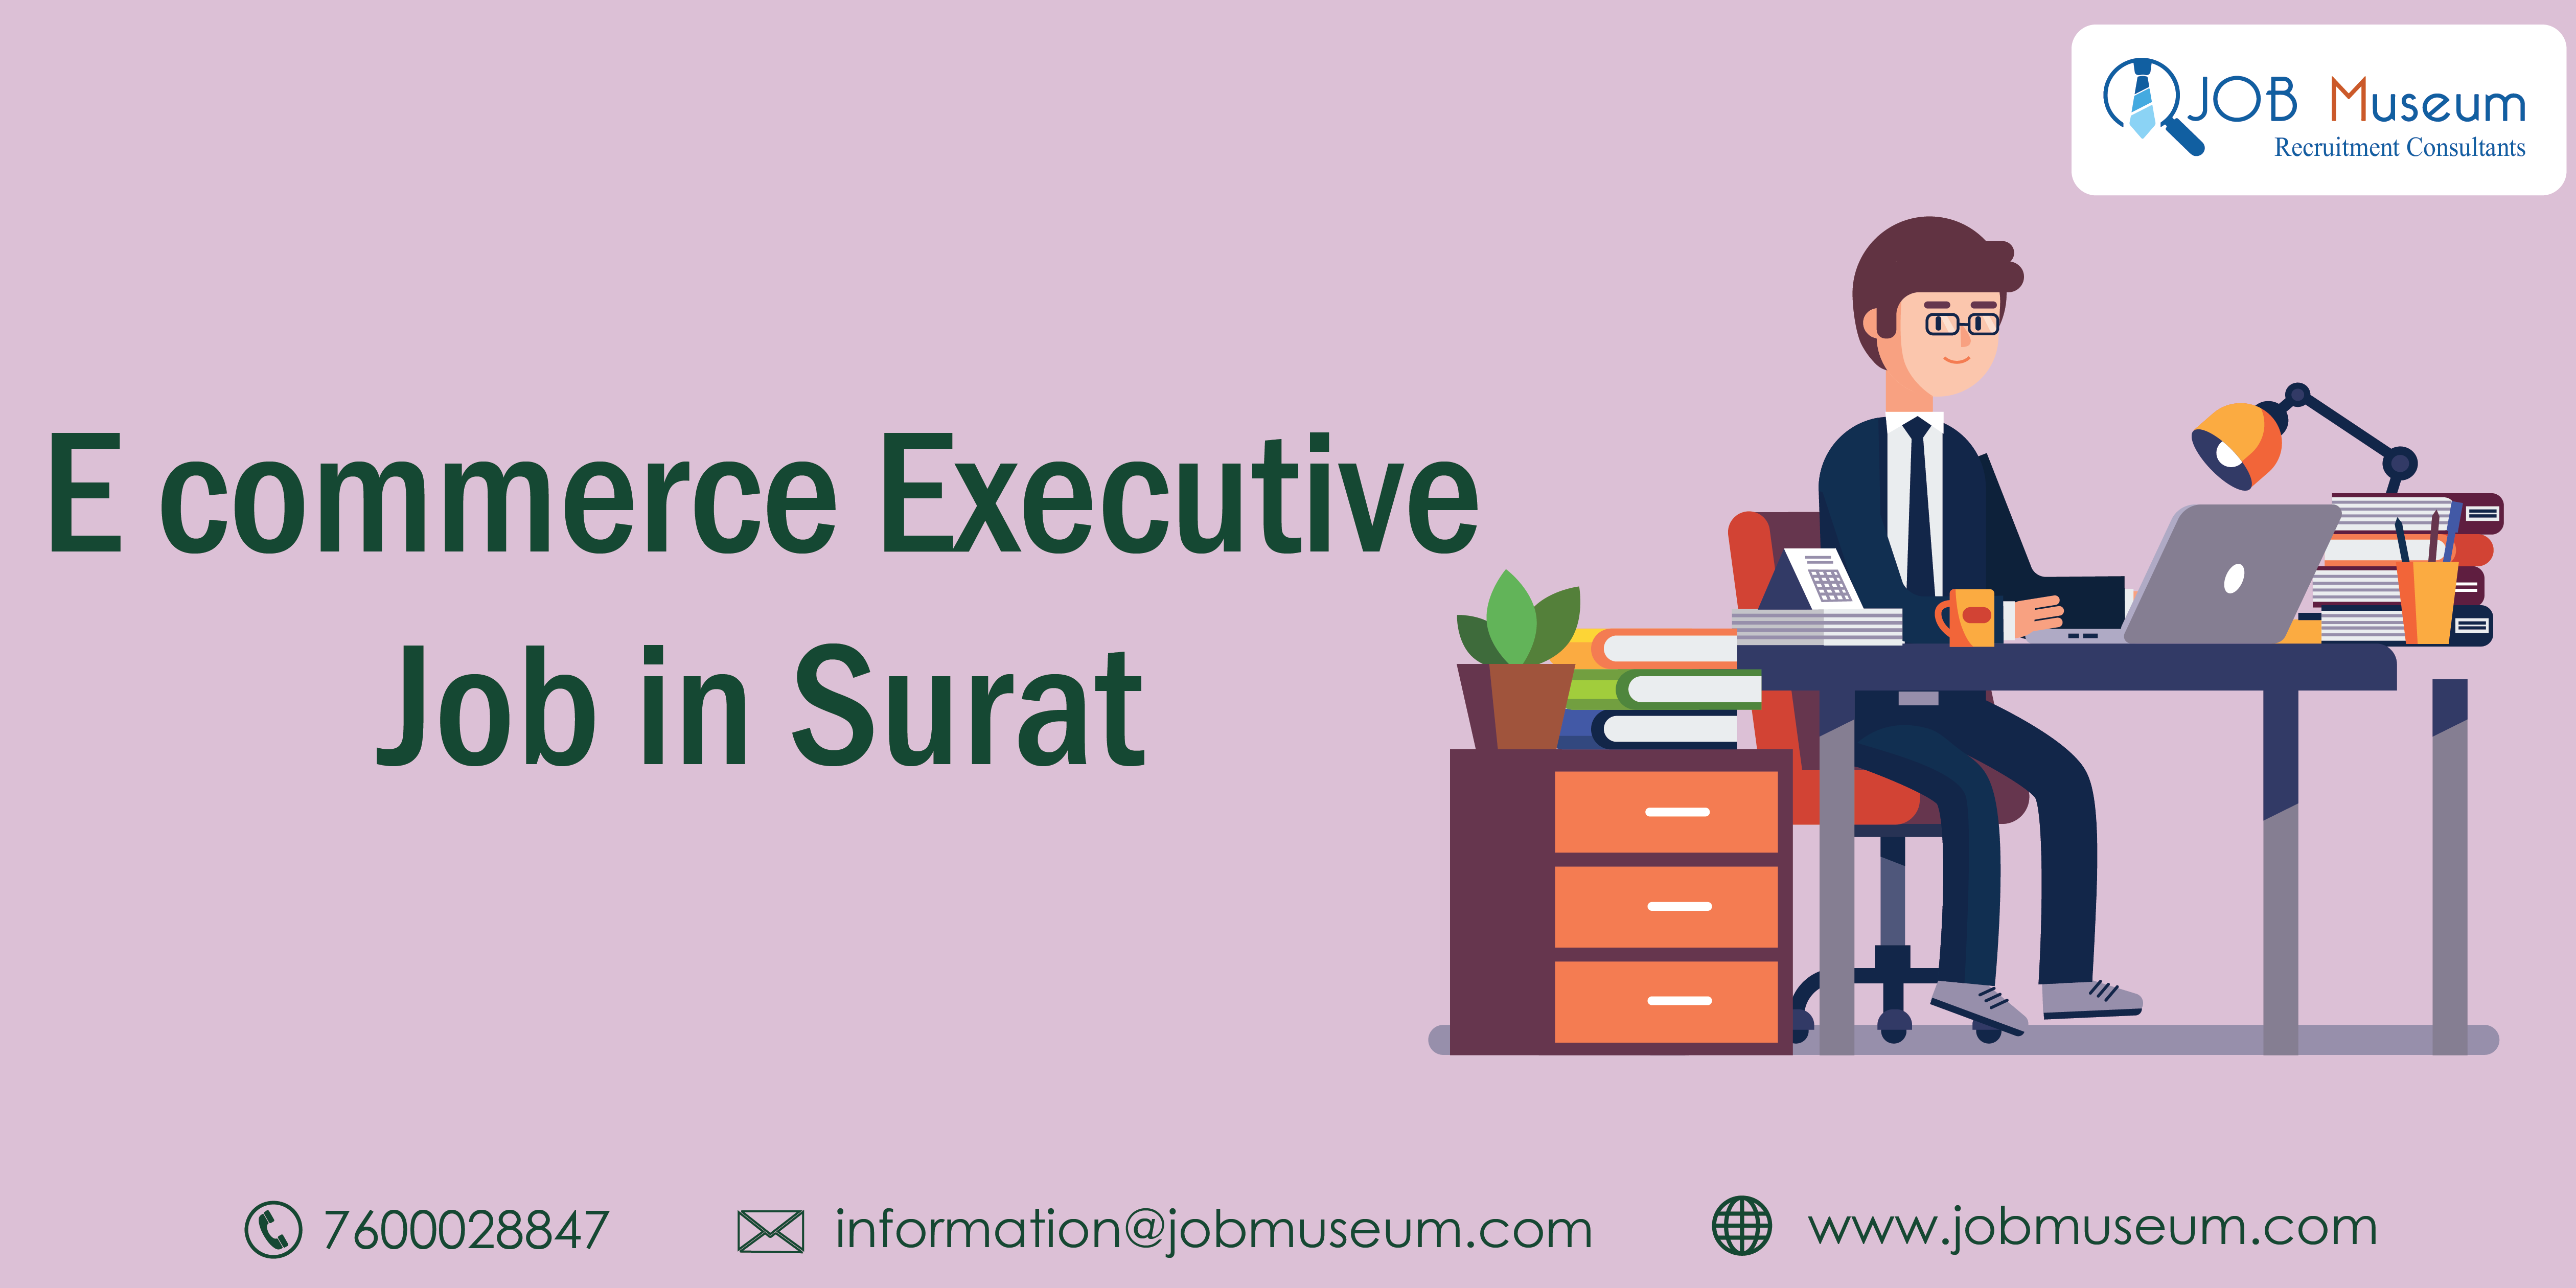 E-Commerce Executive Job in Surat